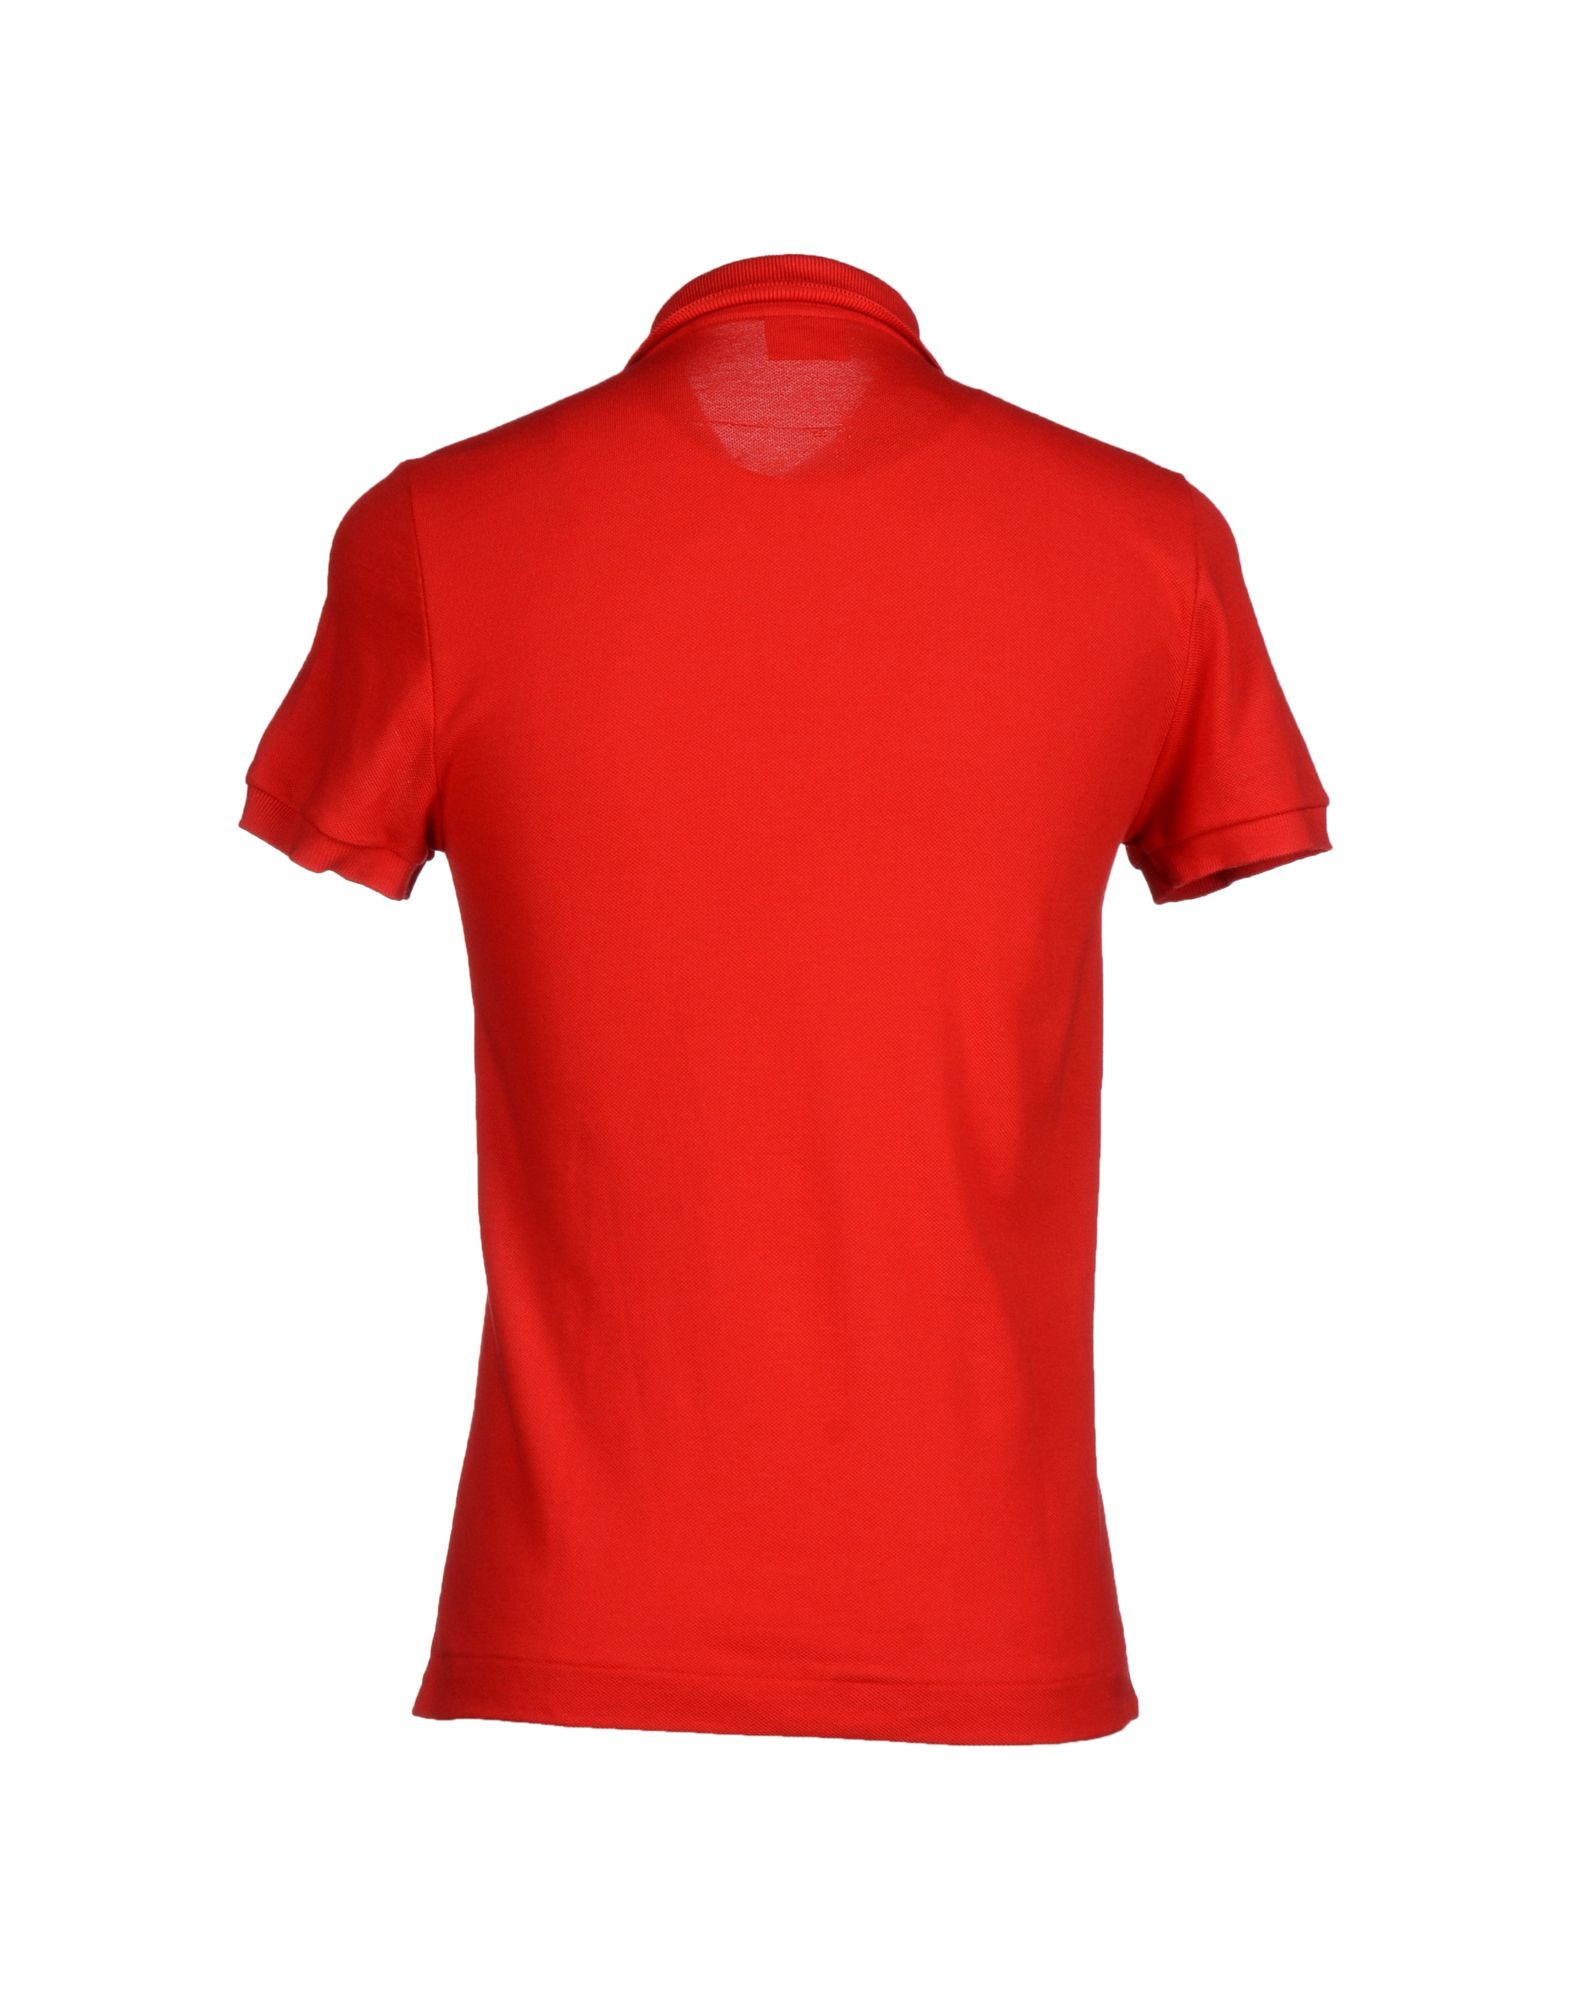 Lacoste polo shirt in red for men lyst for Lacoste poloshirt weiay